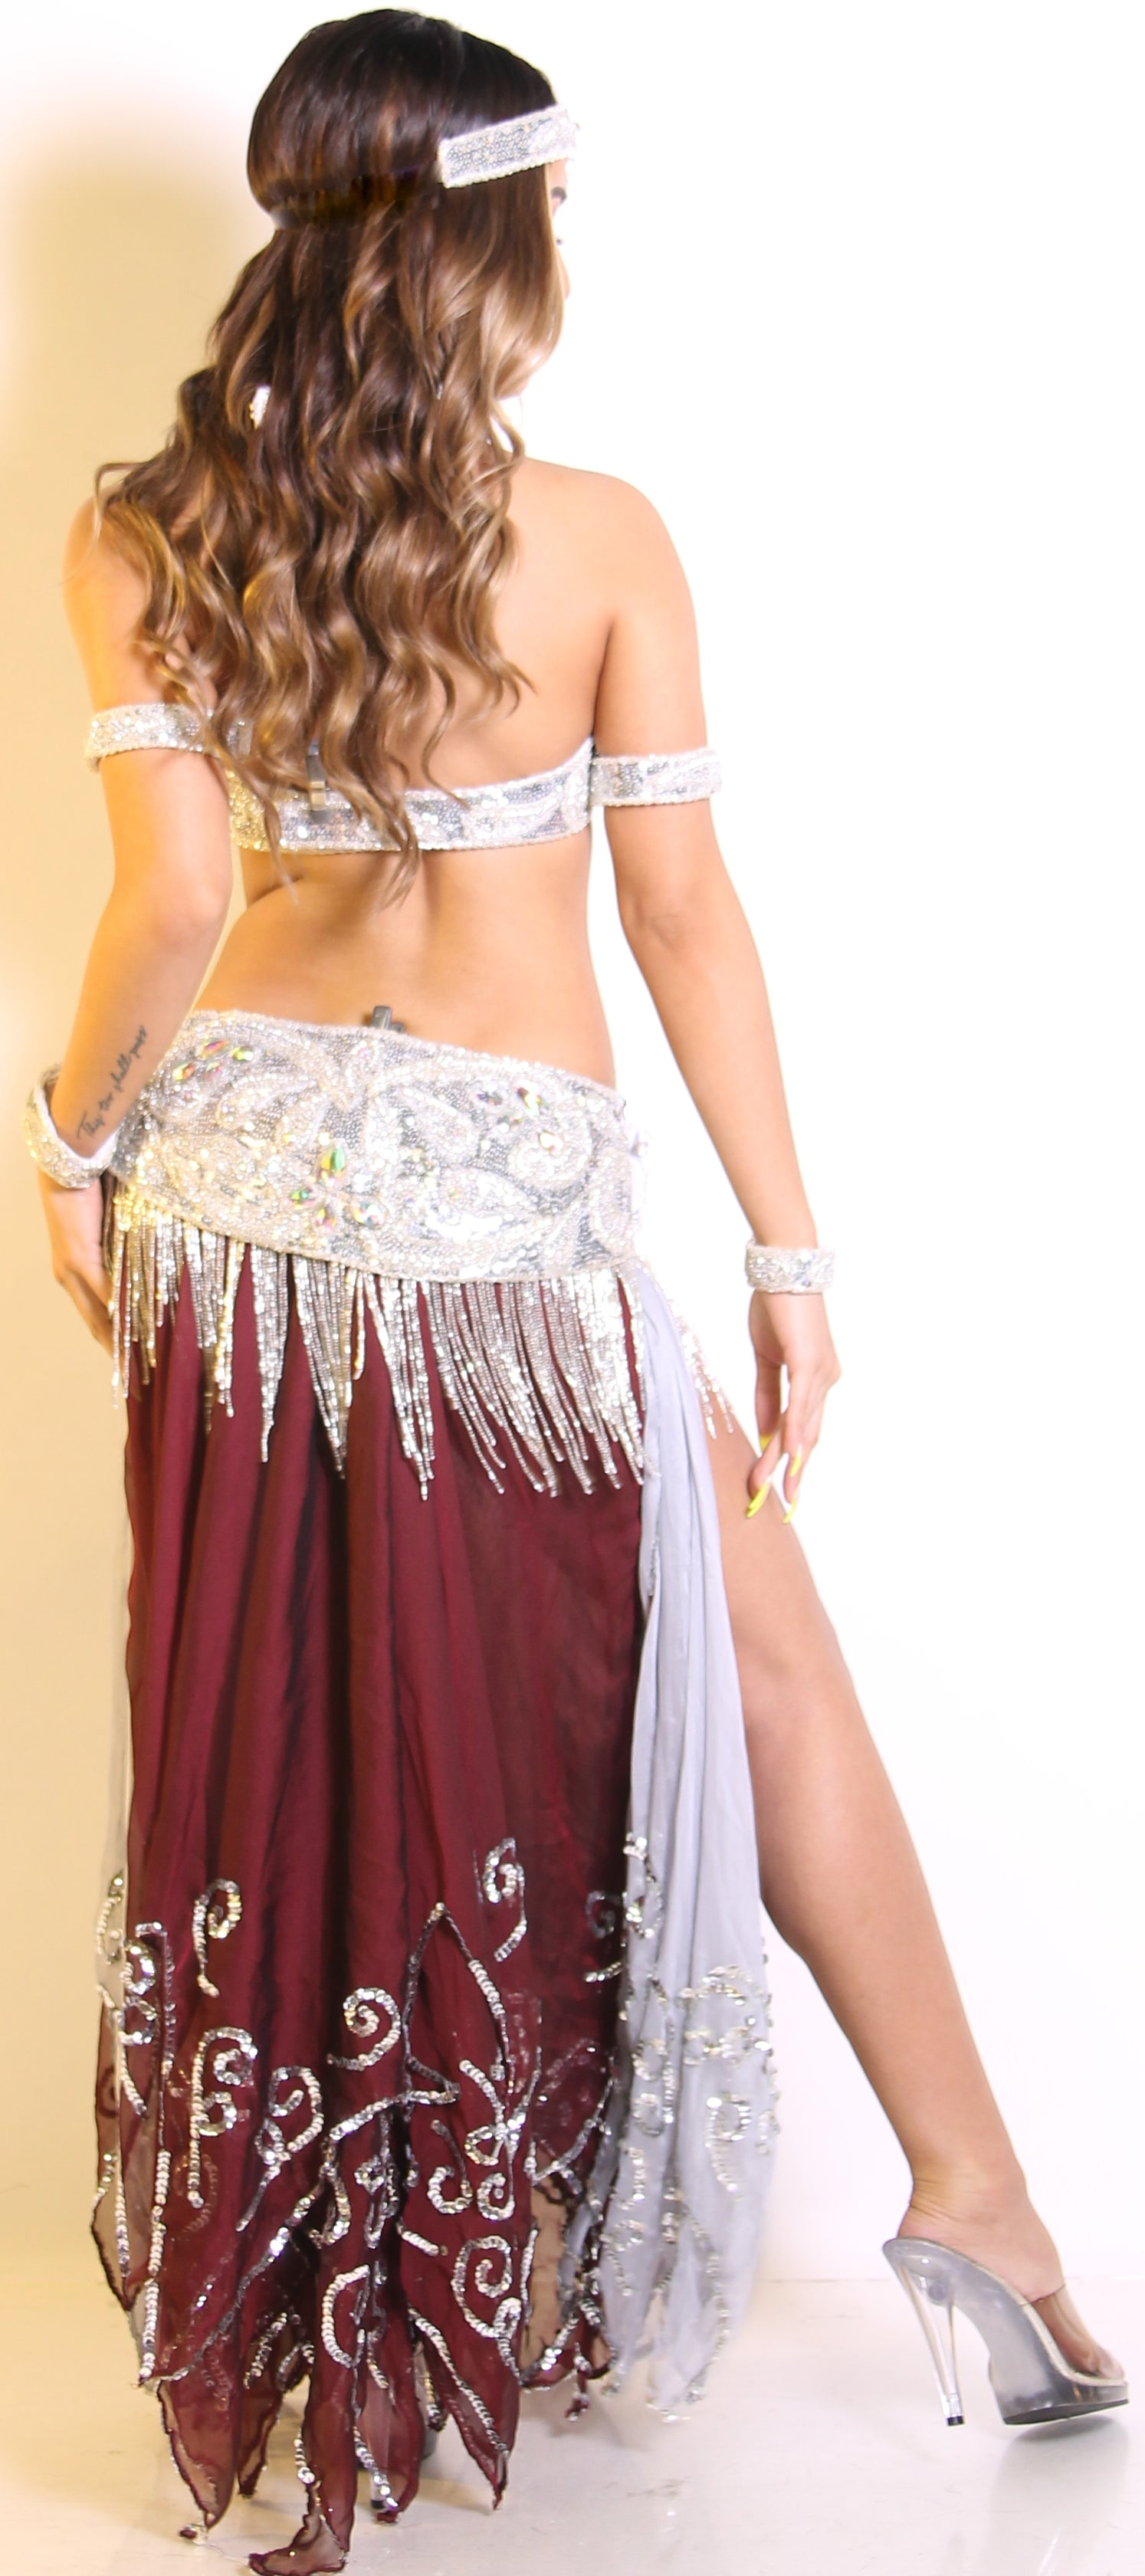 Pharaonics Of Egypt Skirt/Veil Set 23885